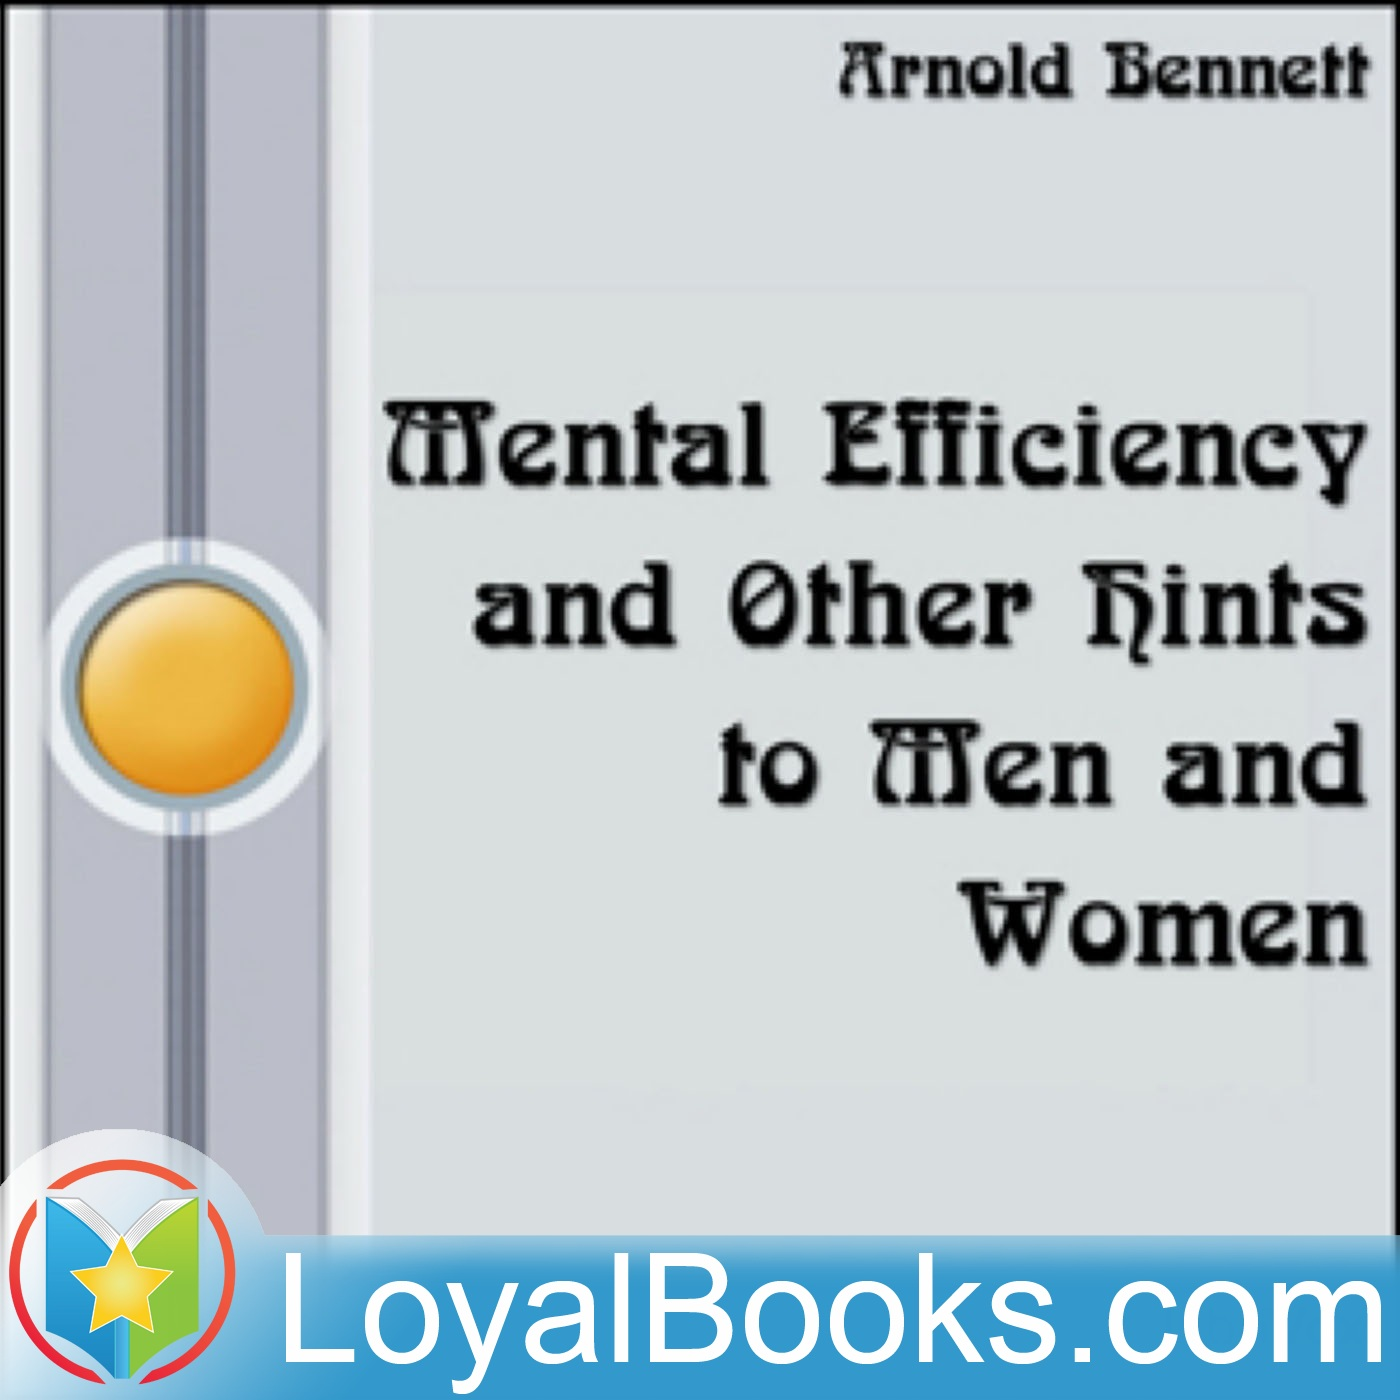 <![CDATA[Mental Efficiency and Other Hints to Men and Women by Arnold Bennett]]>